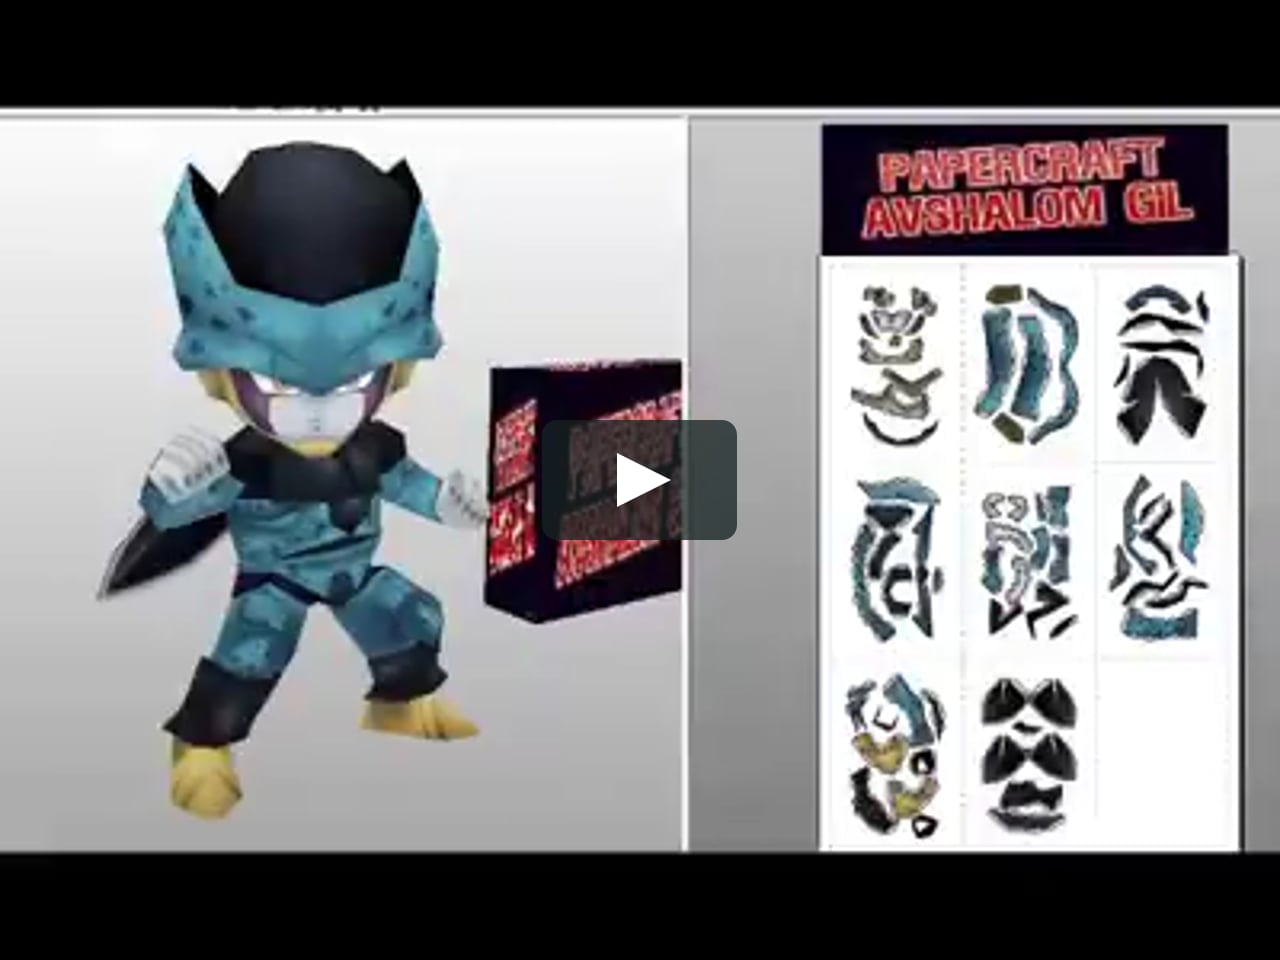 Papercraft Papercraft, Dragon Ball Super, Vegeta ssj4, Trunks, Kaos, Cell Jr-Chibi